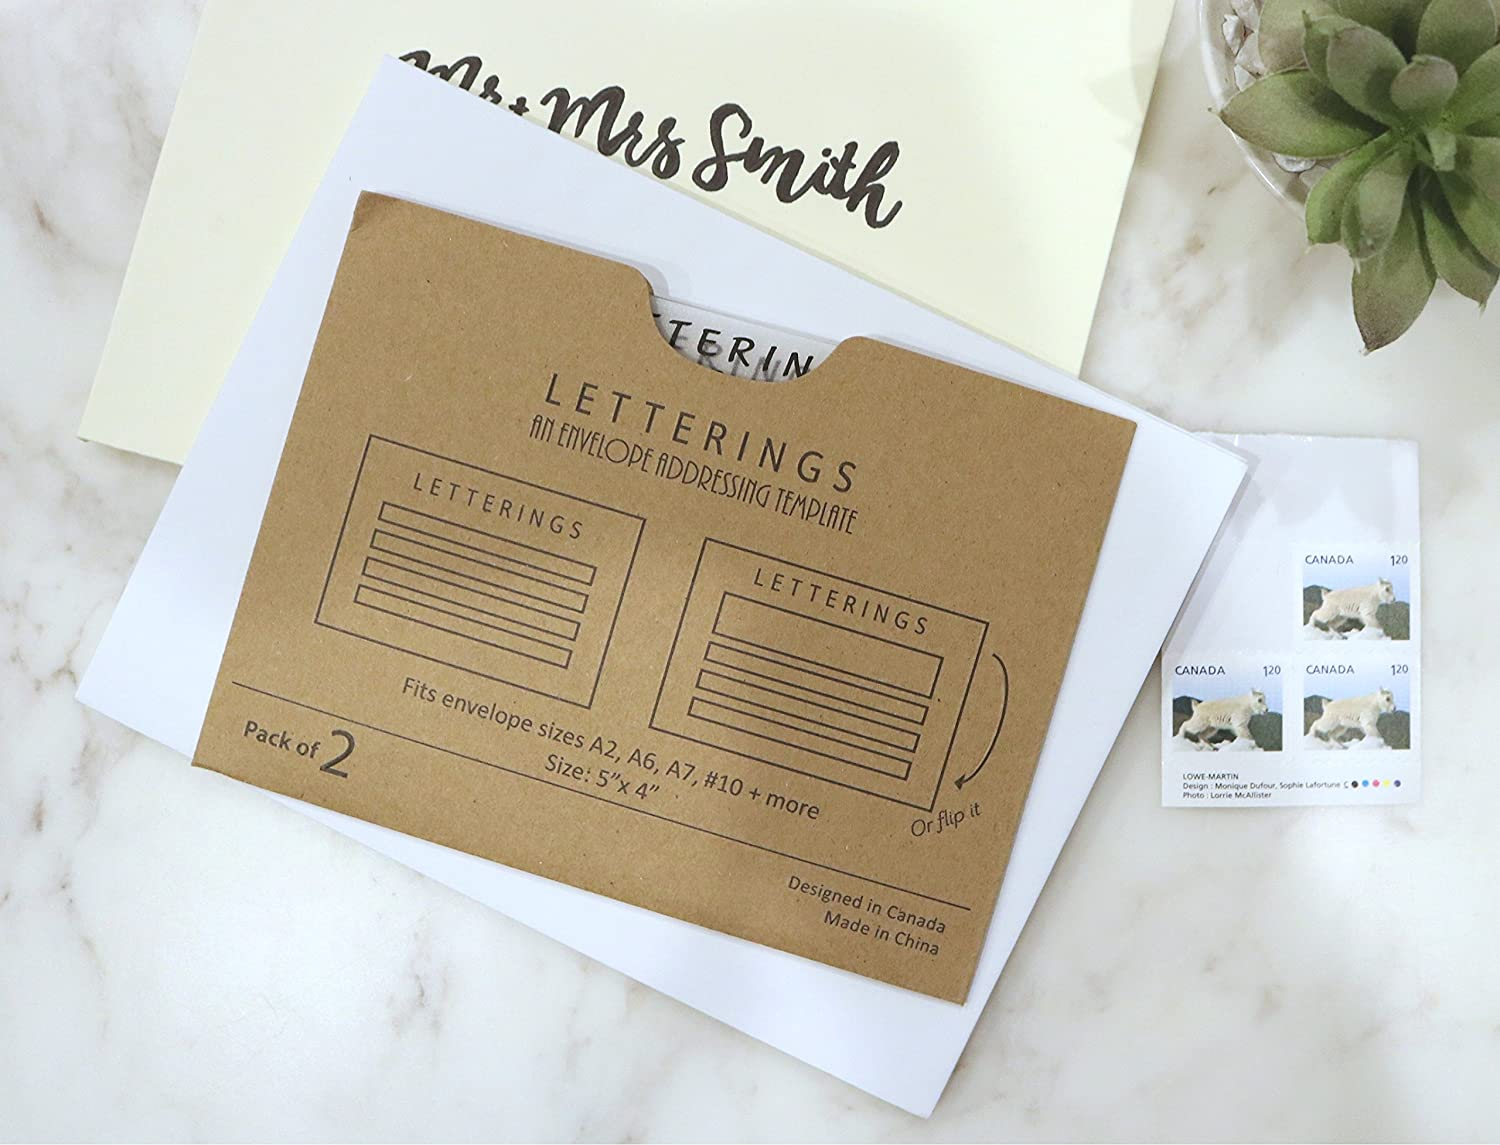 Amazon envelope and address stencil ruler guide and template amazon envelope and address stencil ruler guide and template for writing calligraphy recipe cards wedding invitations thank you notes monicamarmolfo Gallery